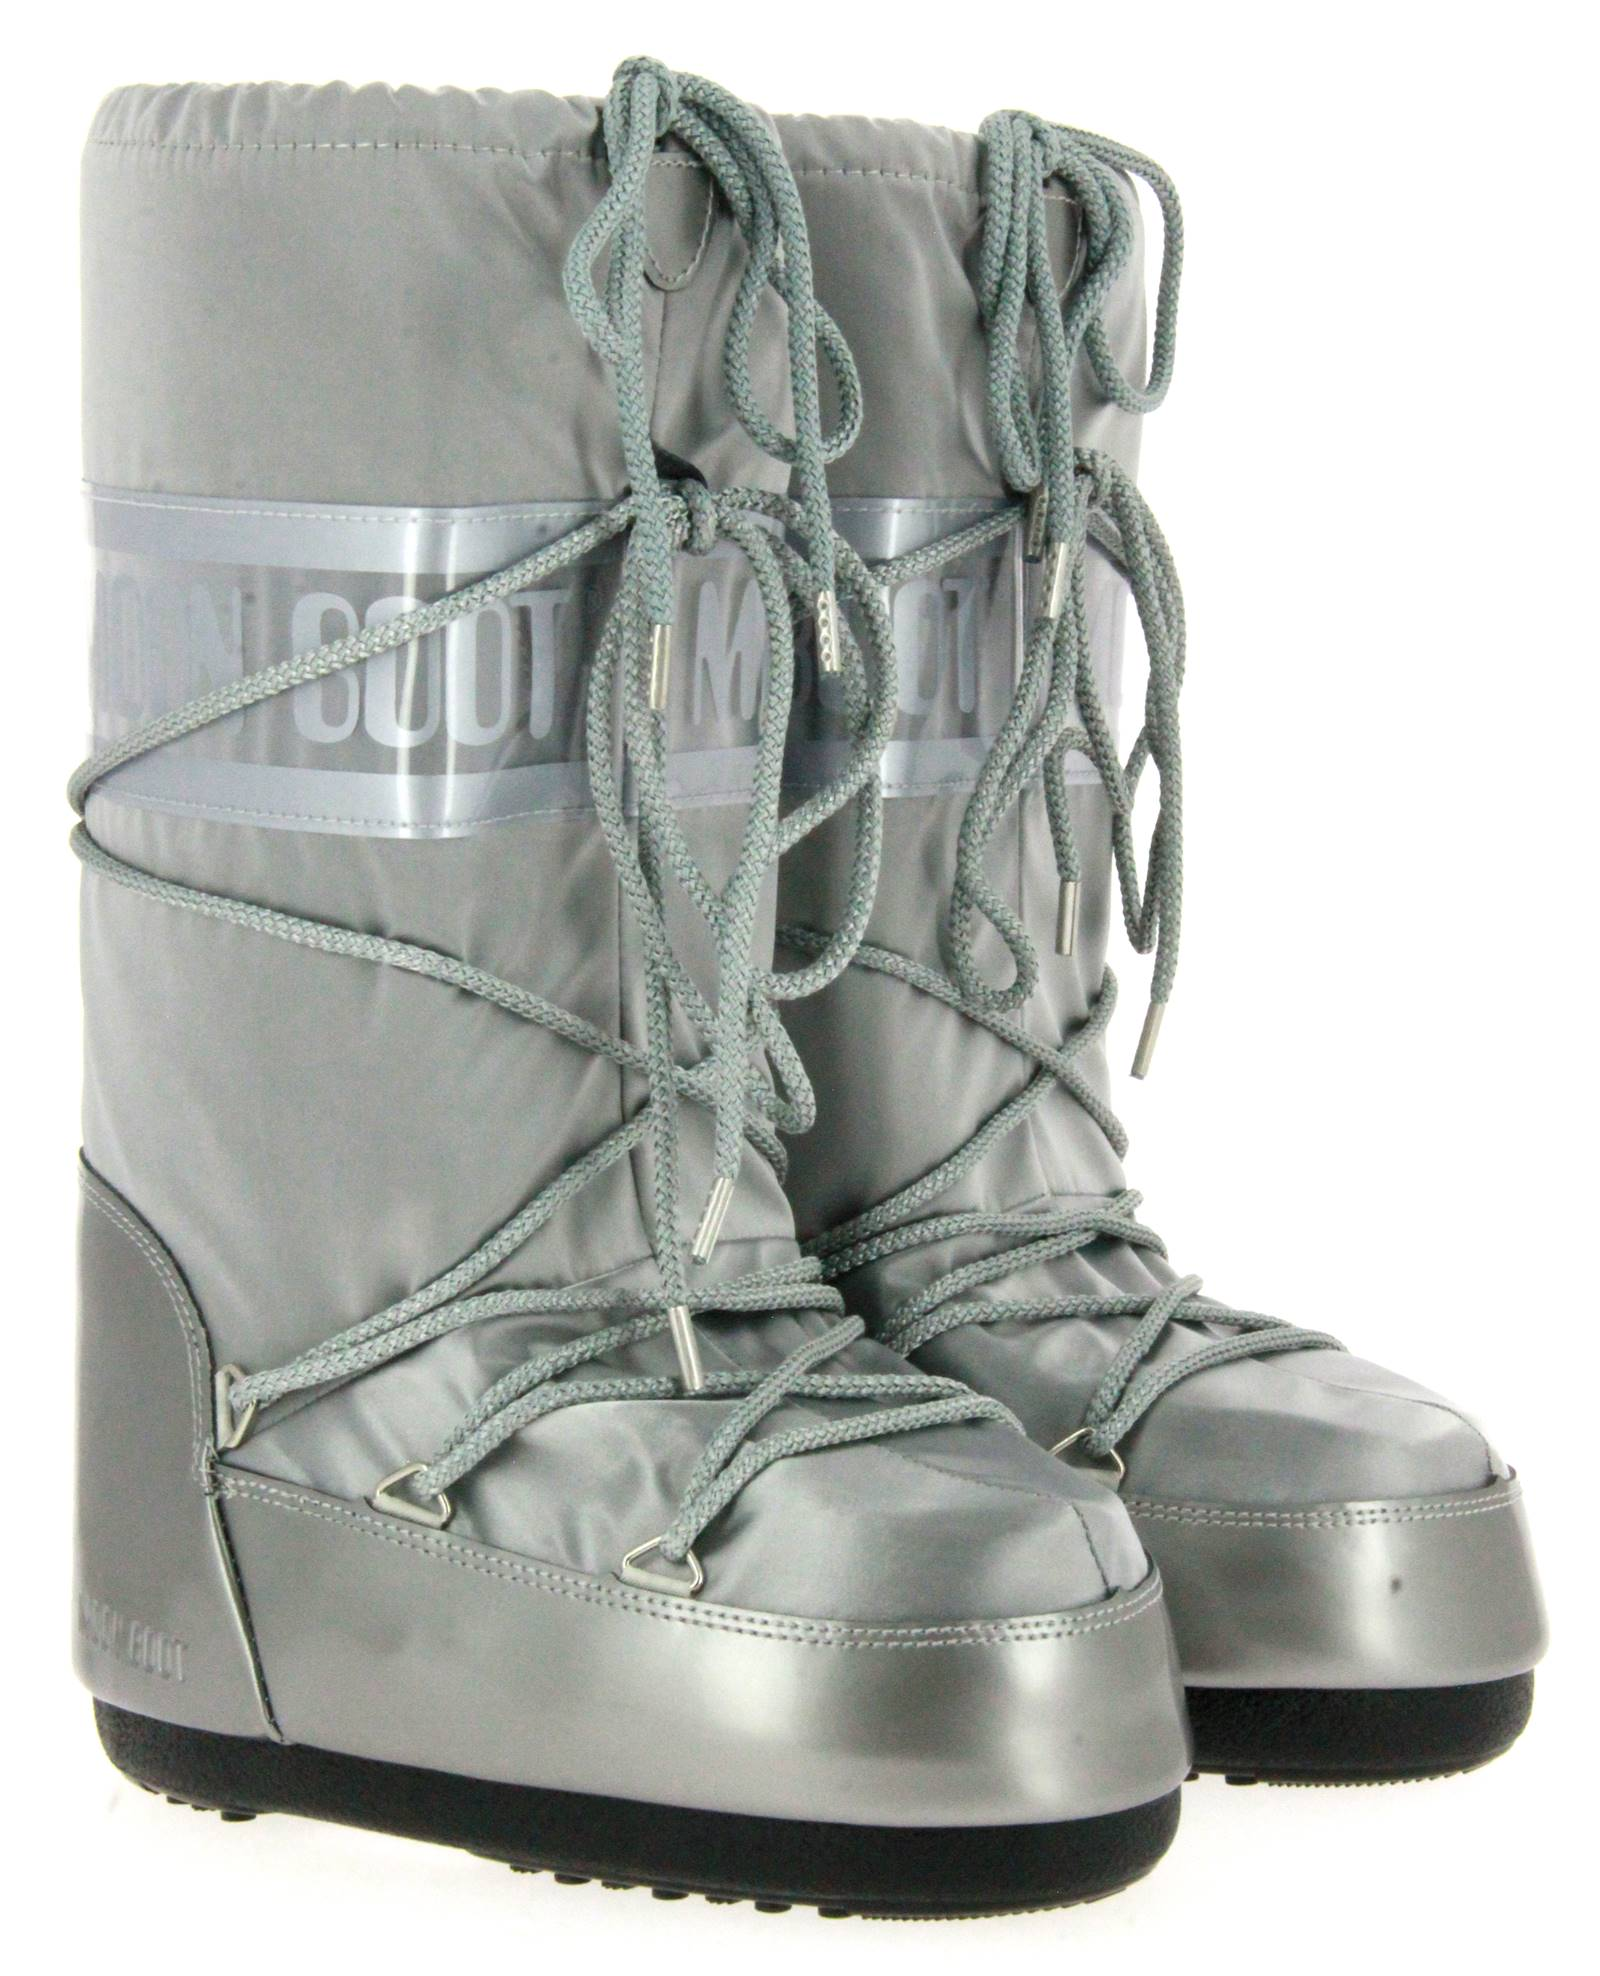 Moon Boot Snowboots GLANCE SILVER (39-41)